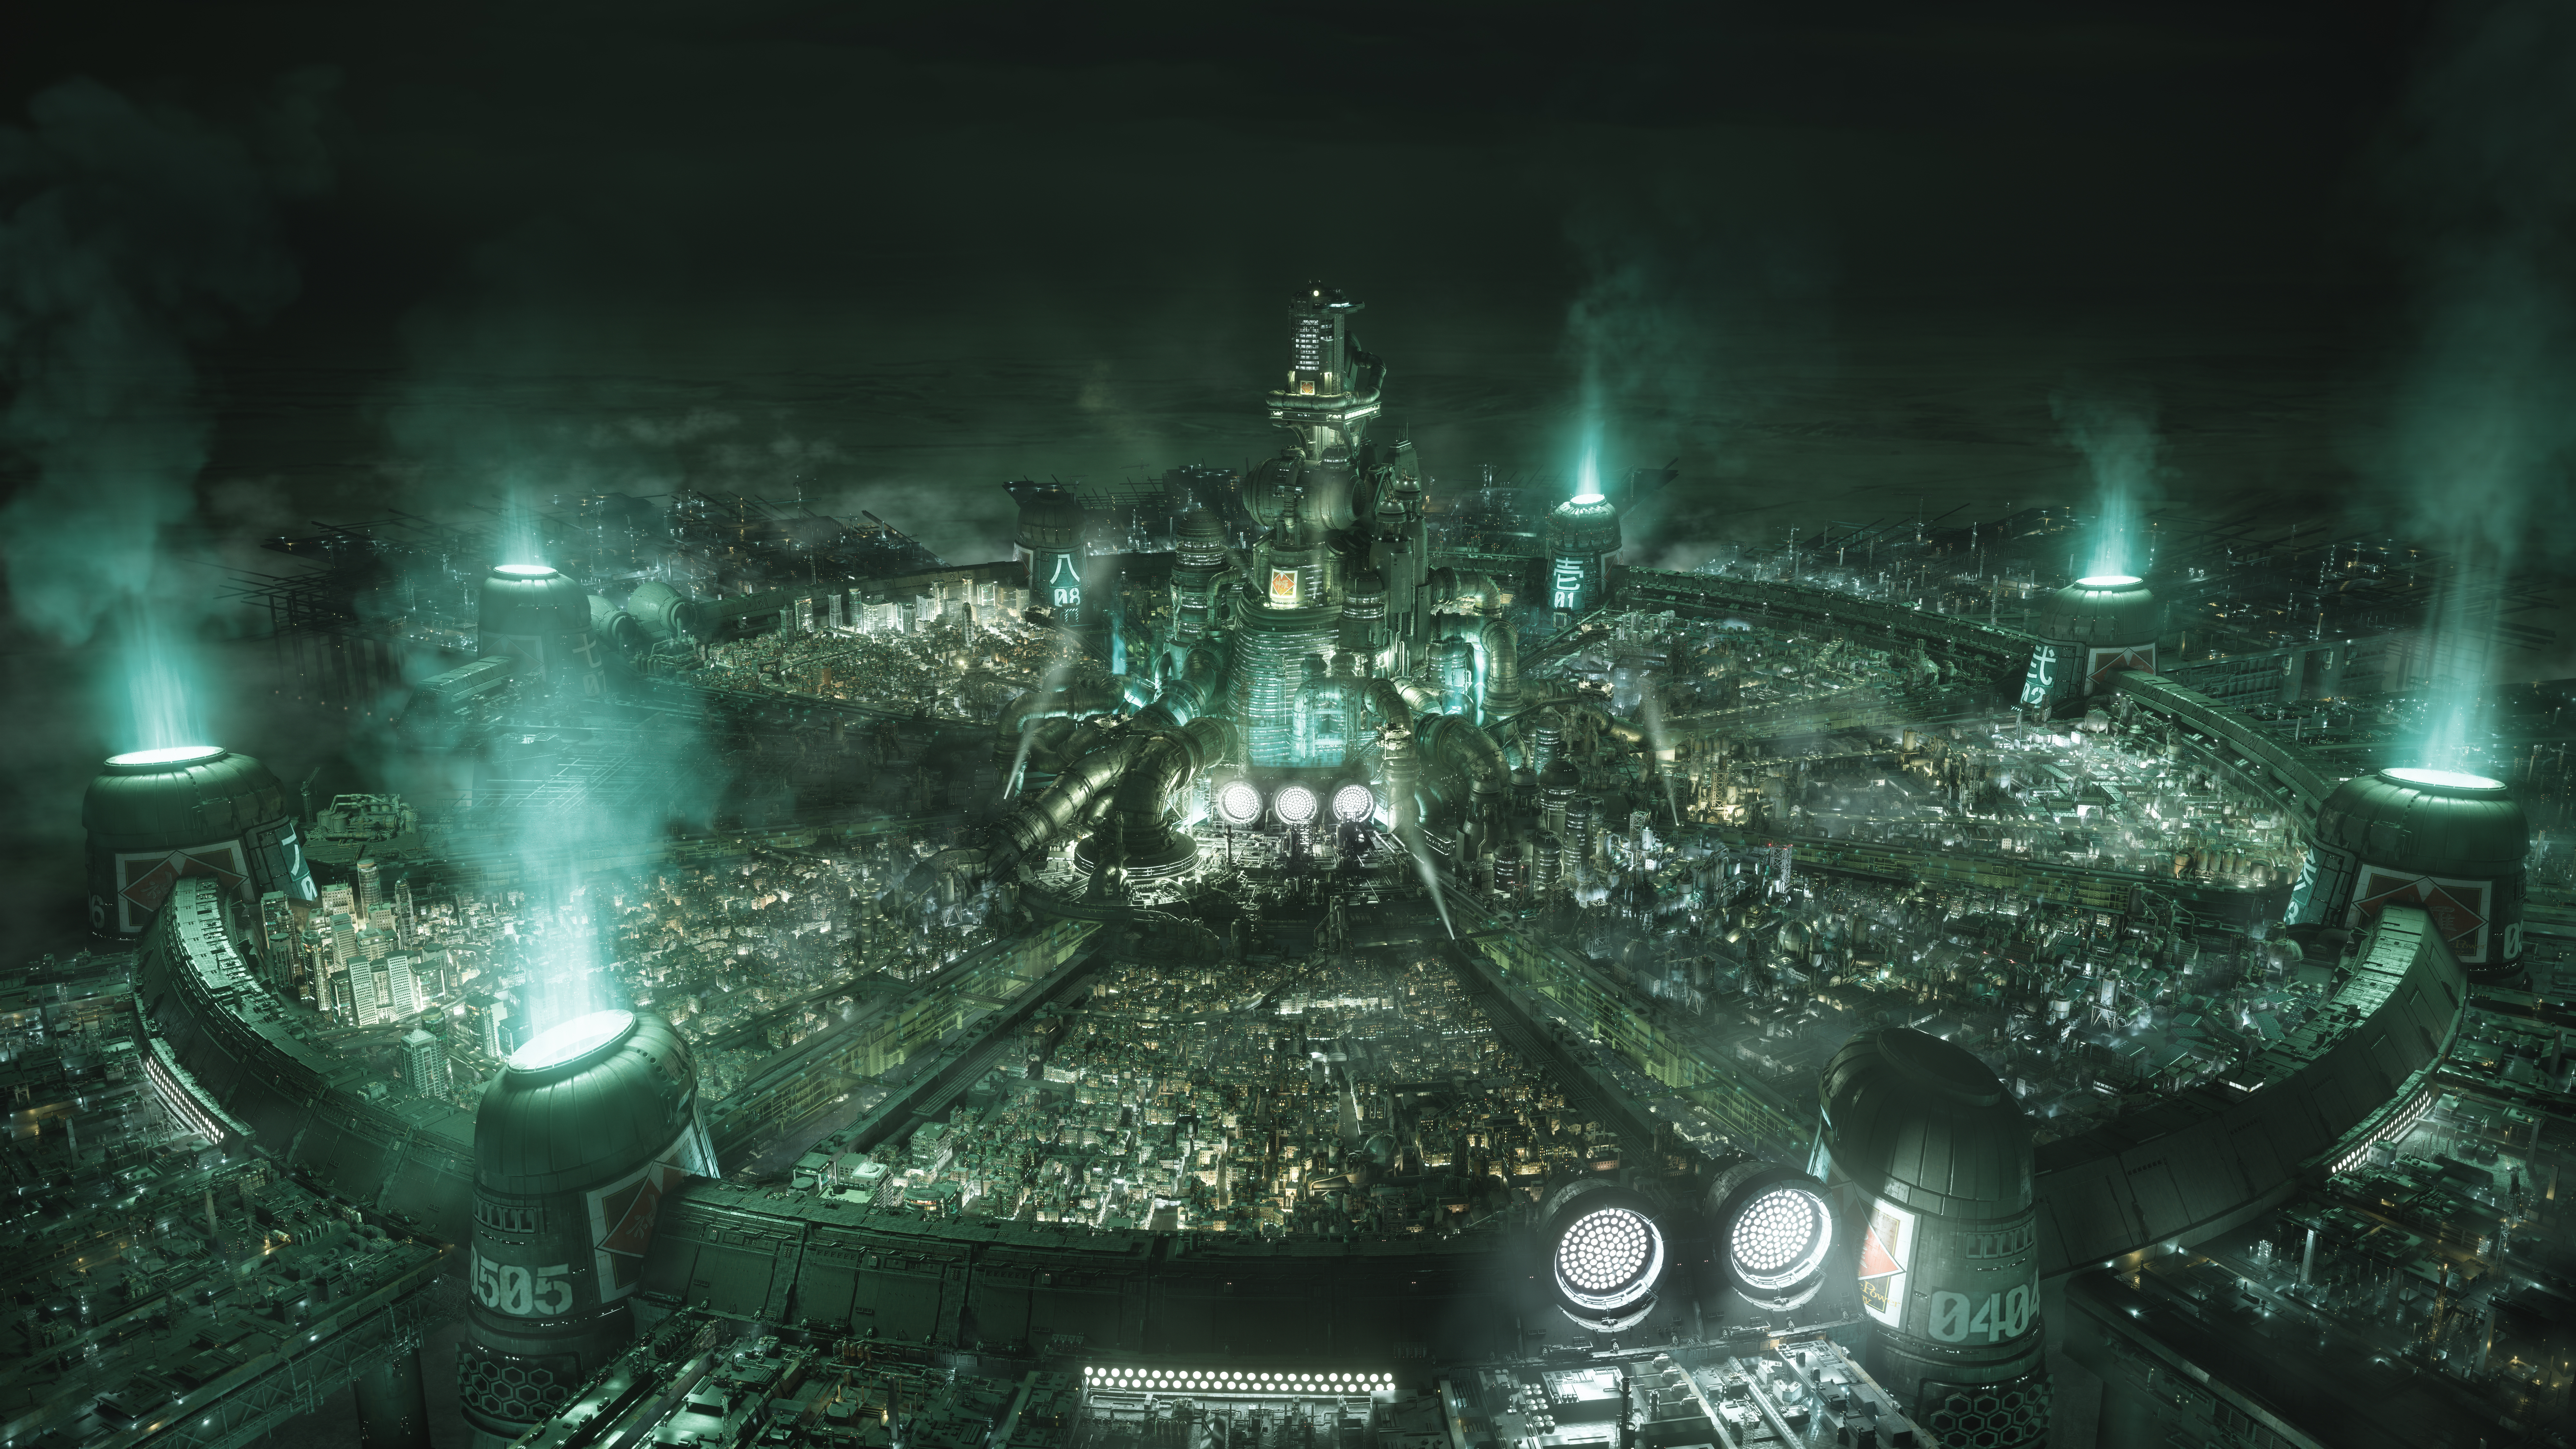 screen cap of FINAL FANTASY VII REMAKE video game